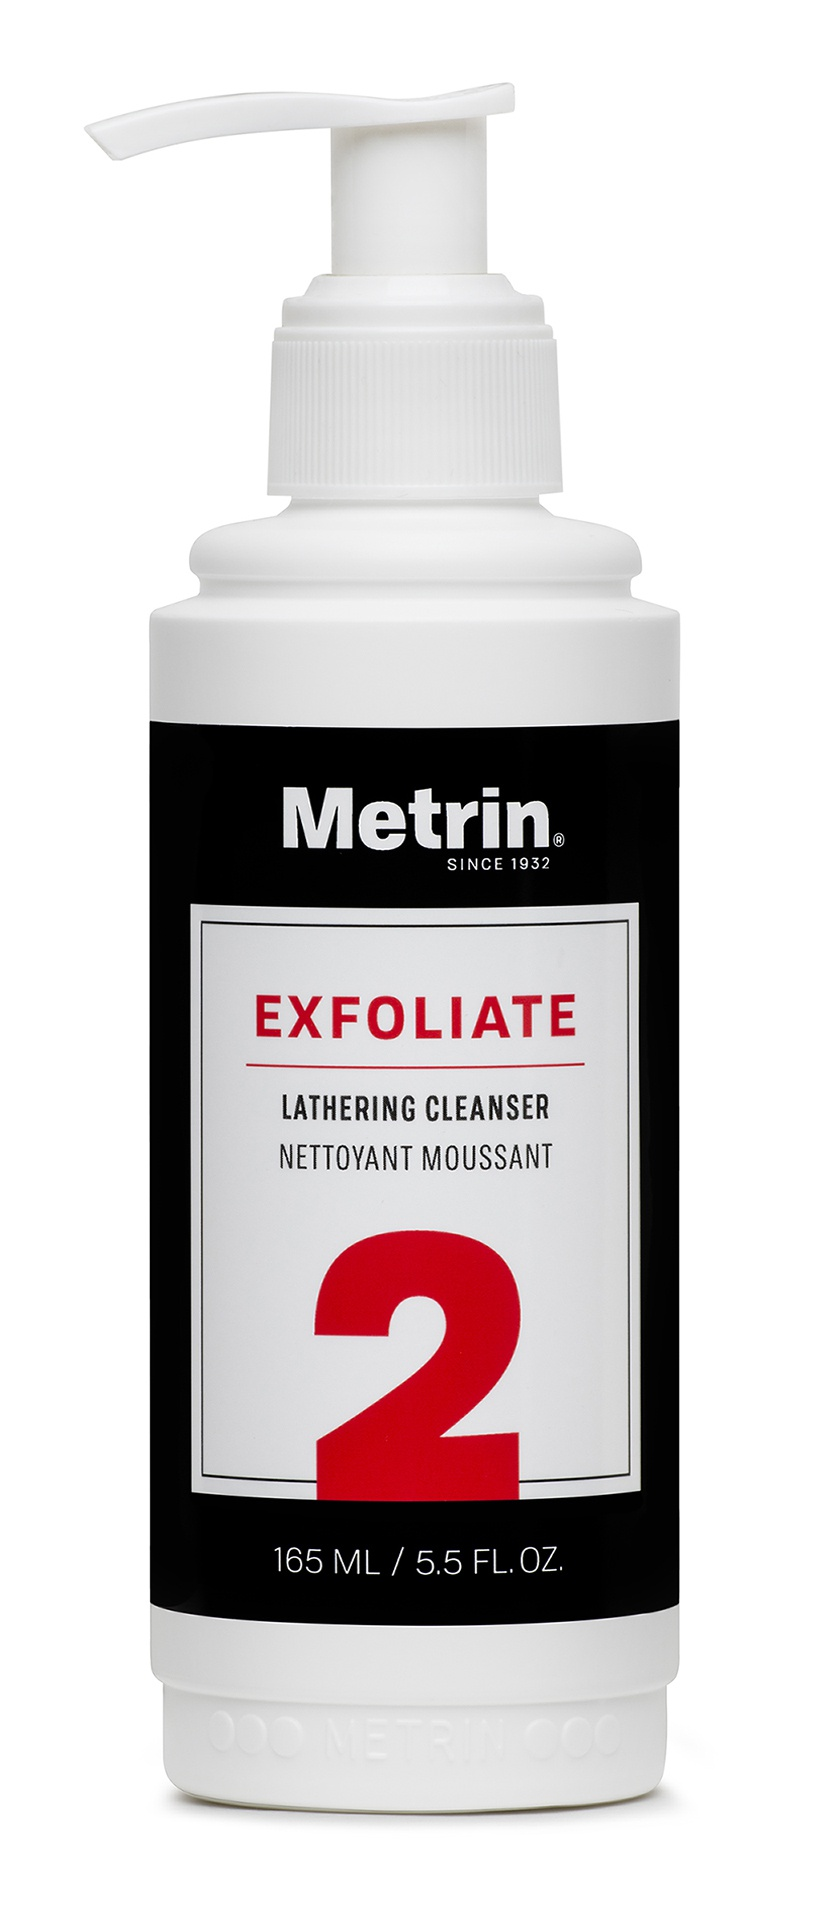 Metrin Lathering Cleanser For Him